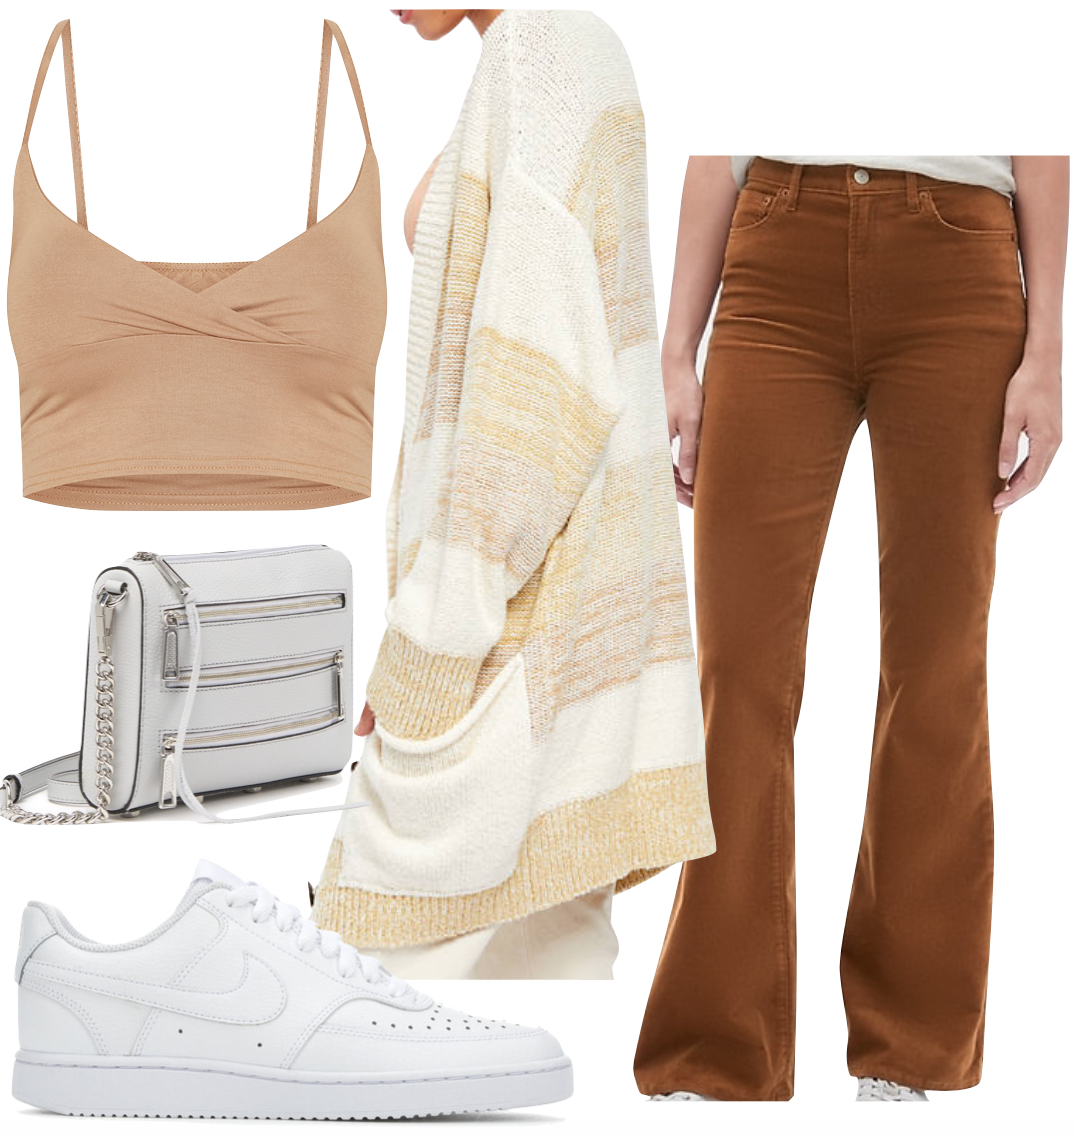 Chantel Jeffries Outfit: brown corduroy flared pants, multicolor cardigan sweater, tan v-neck crop top, gray chainlink crossbody bag, and white Nike low top sneakers